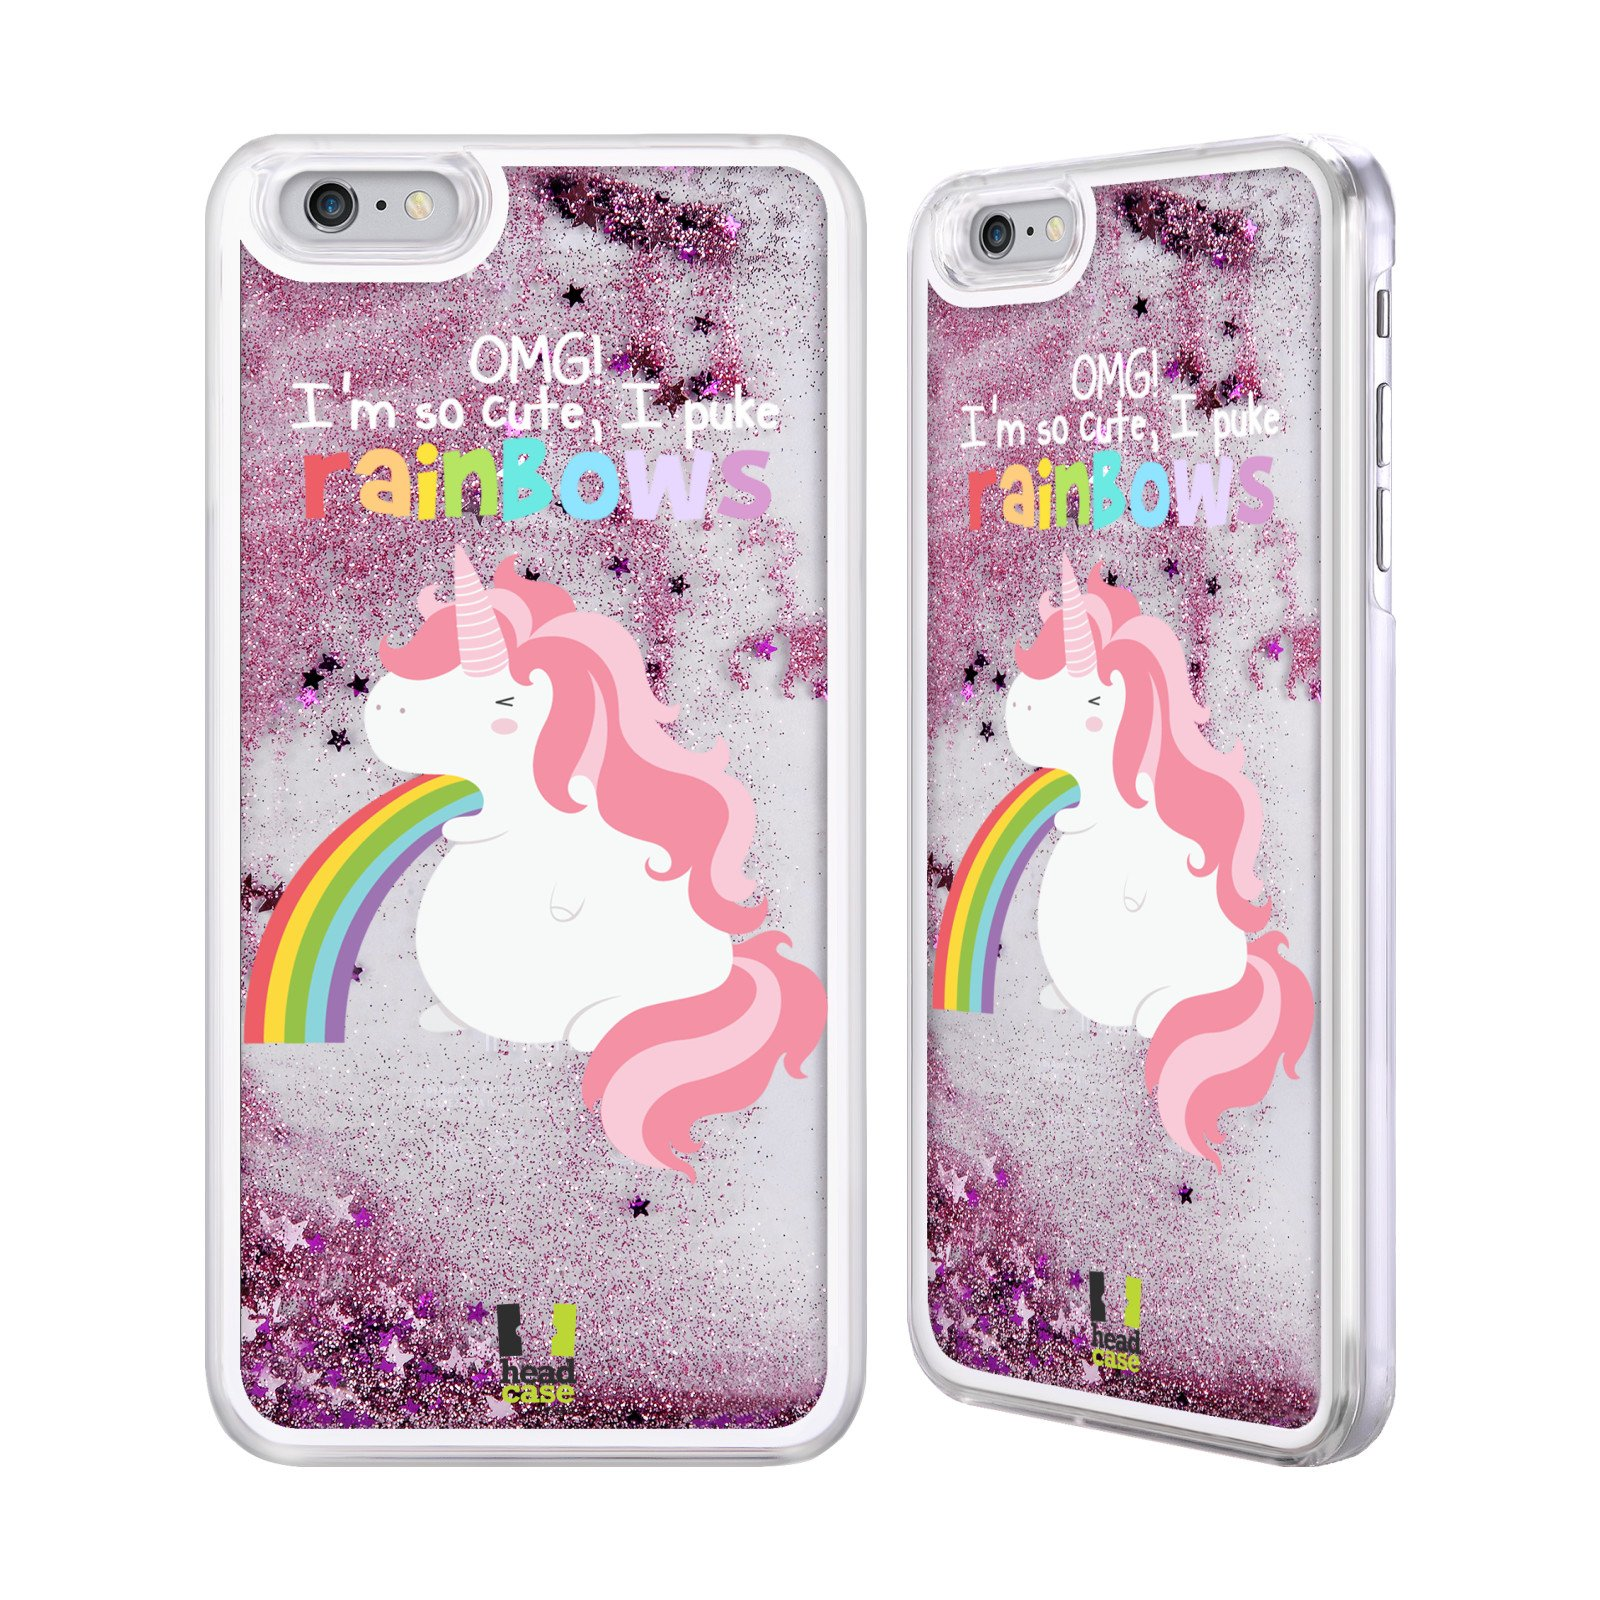 Apple iPhone Unicorn Liquid Glitter